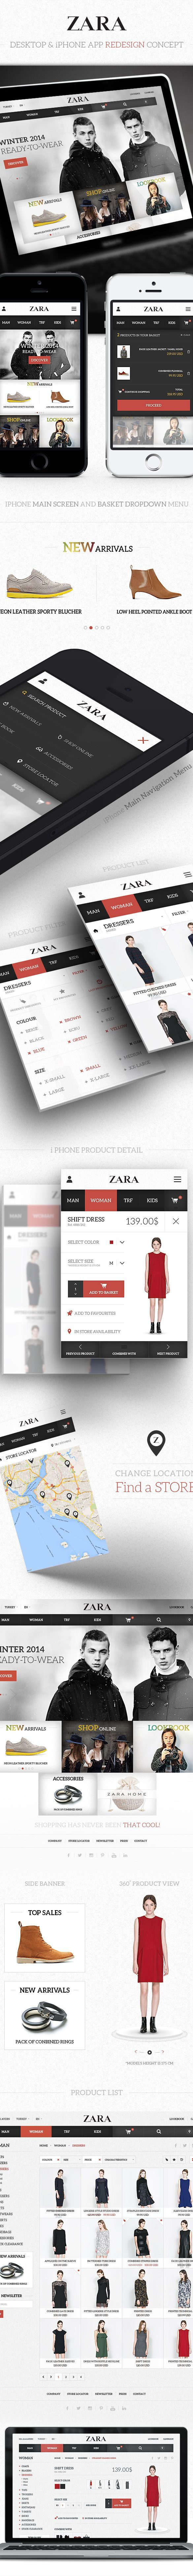 Zara / Desktop & iPhone App Redesign by Eray Demirsoy